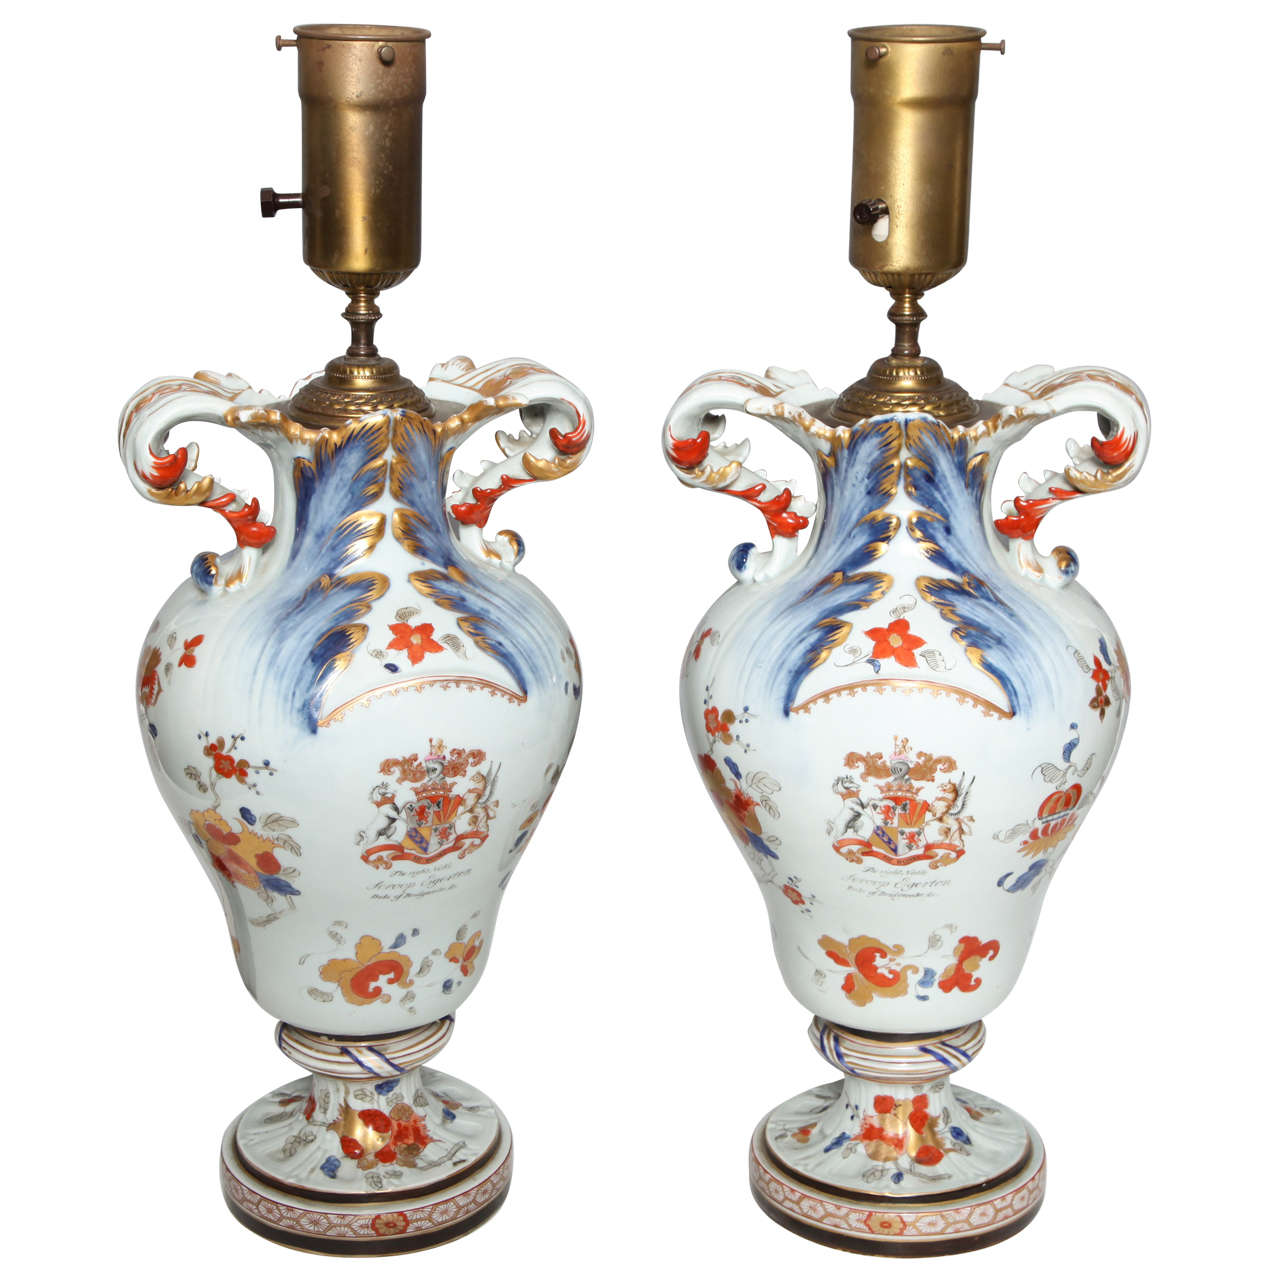 A pair of antique chinese export porcelain vases with english a pair of antique chinese export porcelain vases with english coats of arms for sale floridaeventfo Choice Image